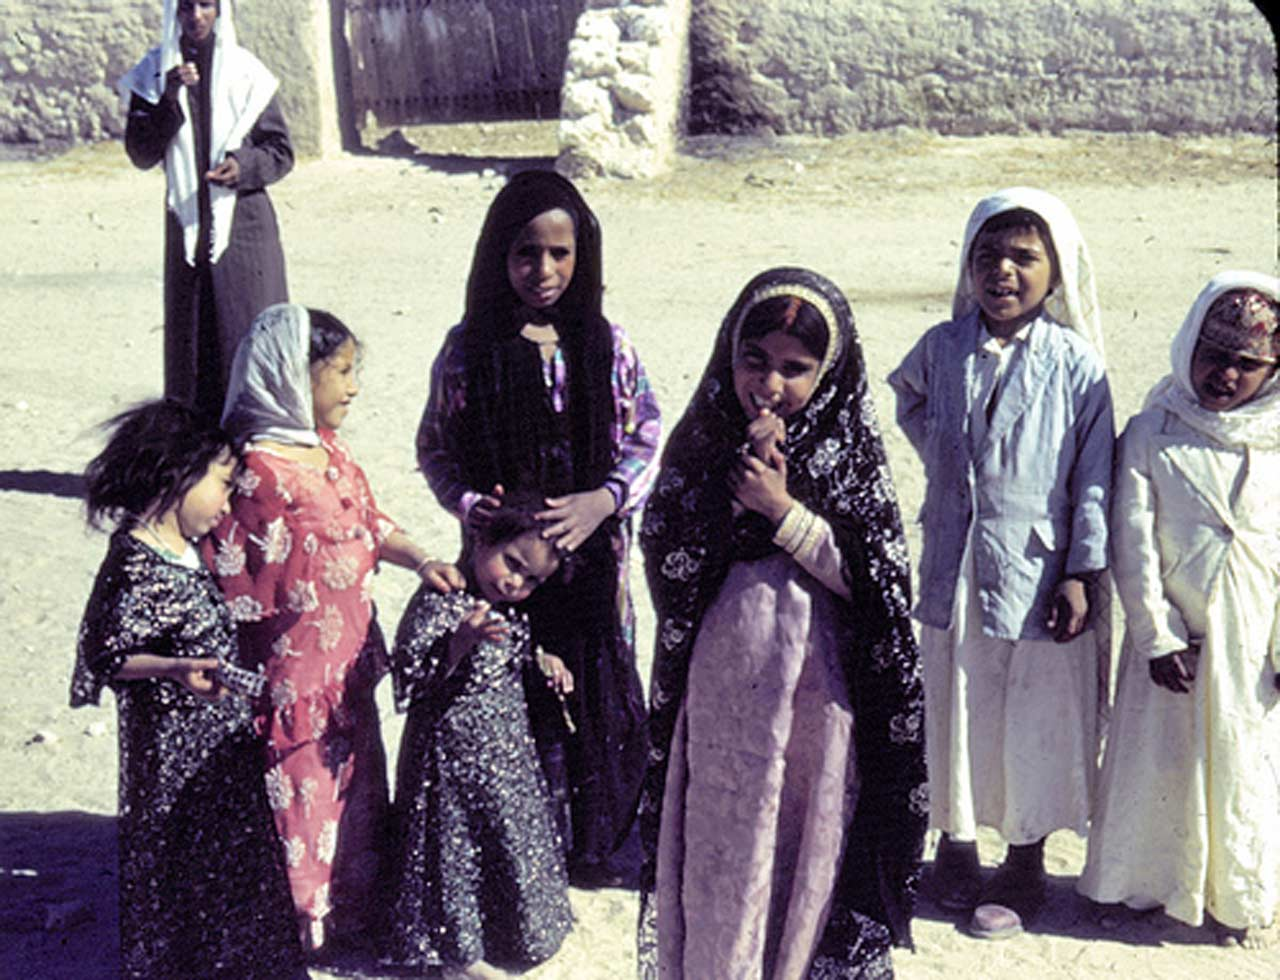 Village Children in Saudi Arabia